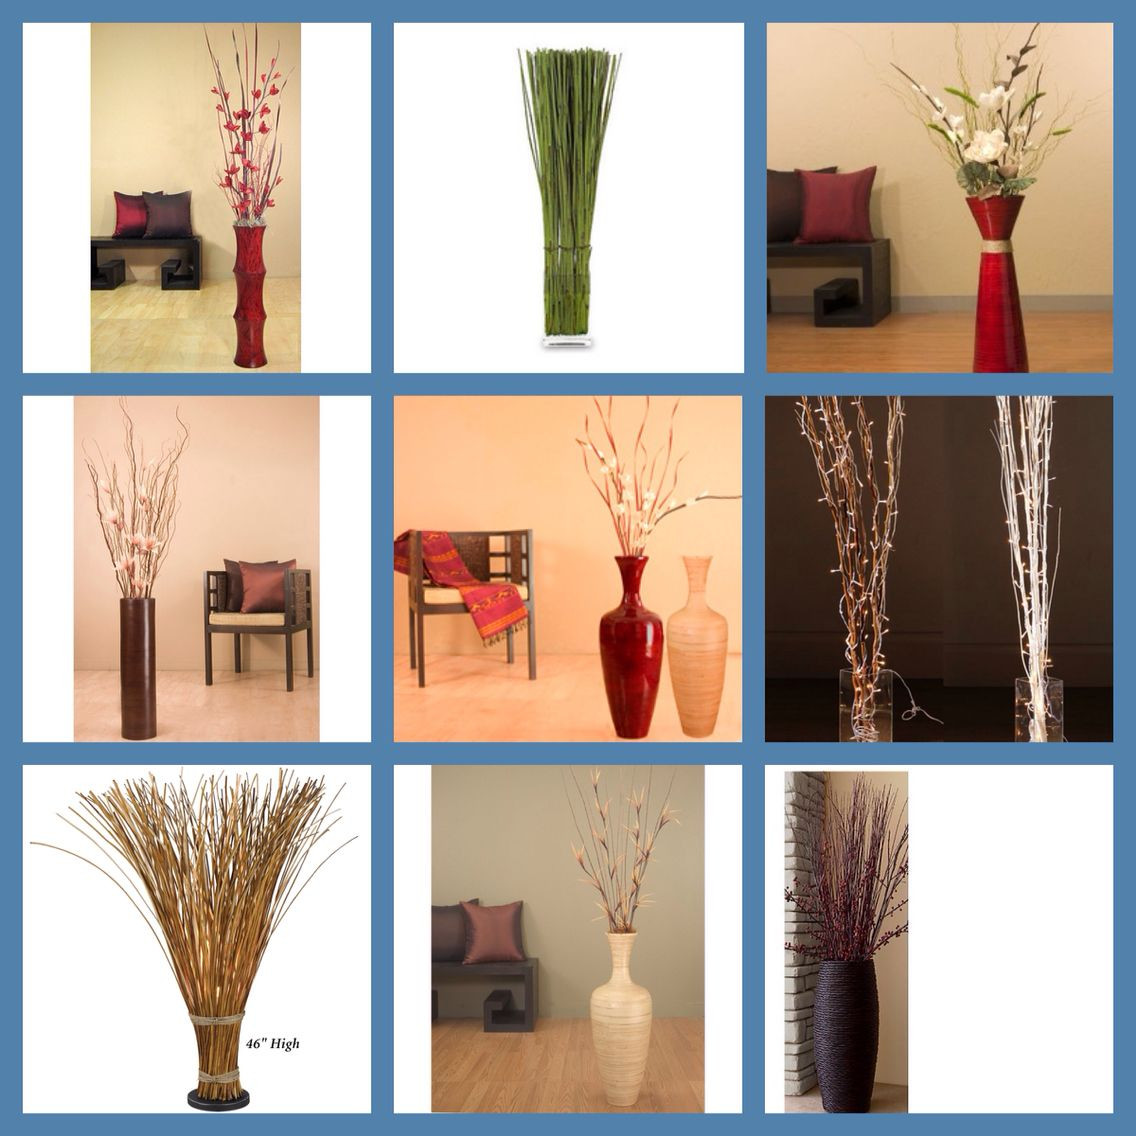 wooden floor vases contemporary of reeds tall flowers to put in the floor vase wish list inside reeds tall flowers to put in the floor vase the floor home projects